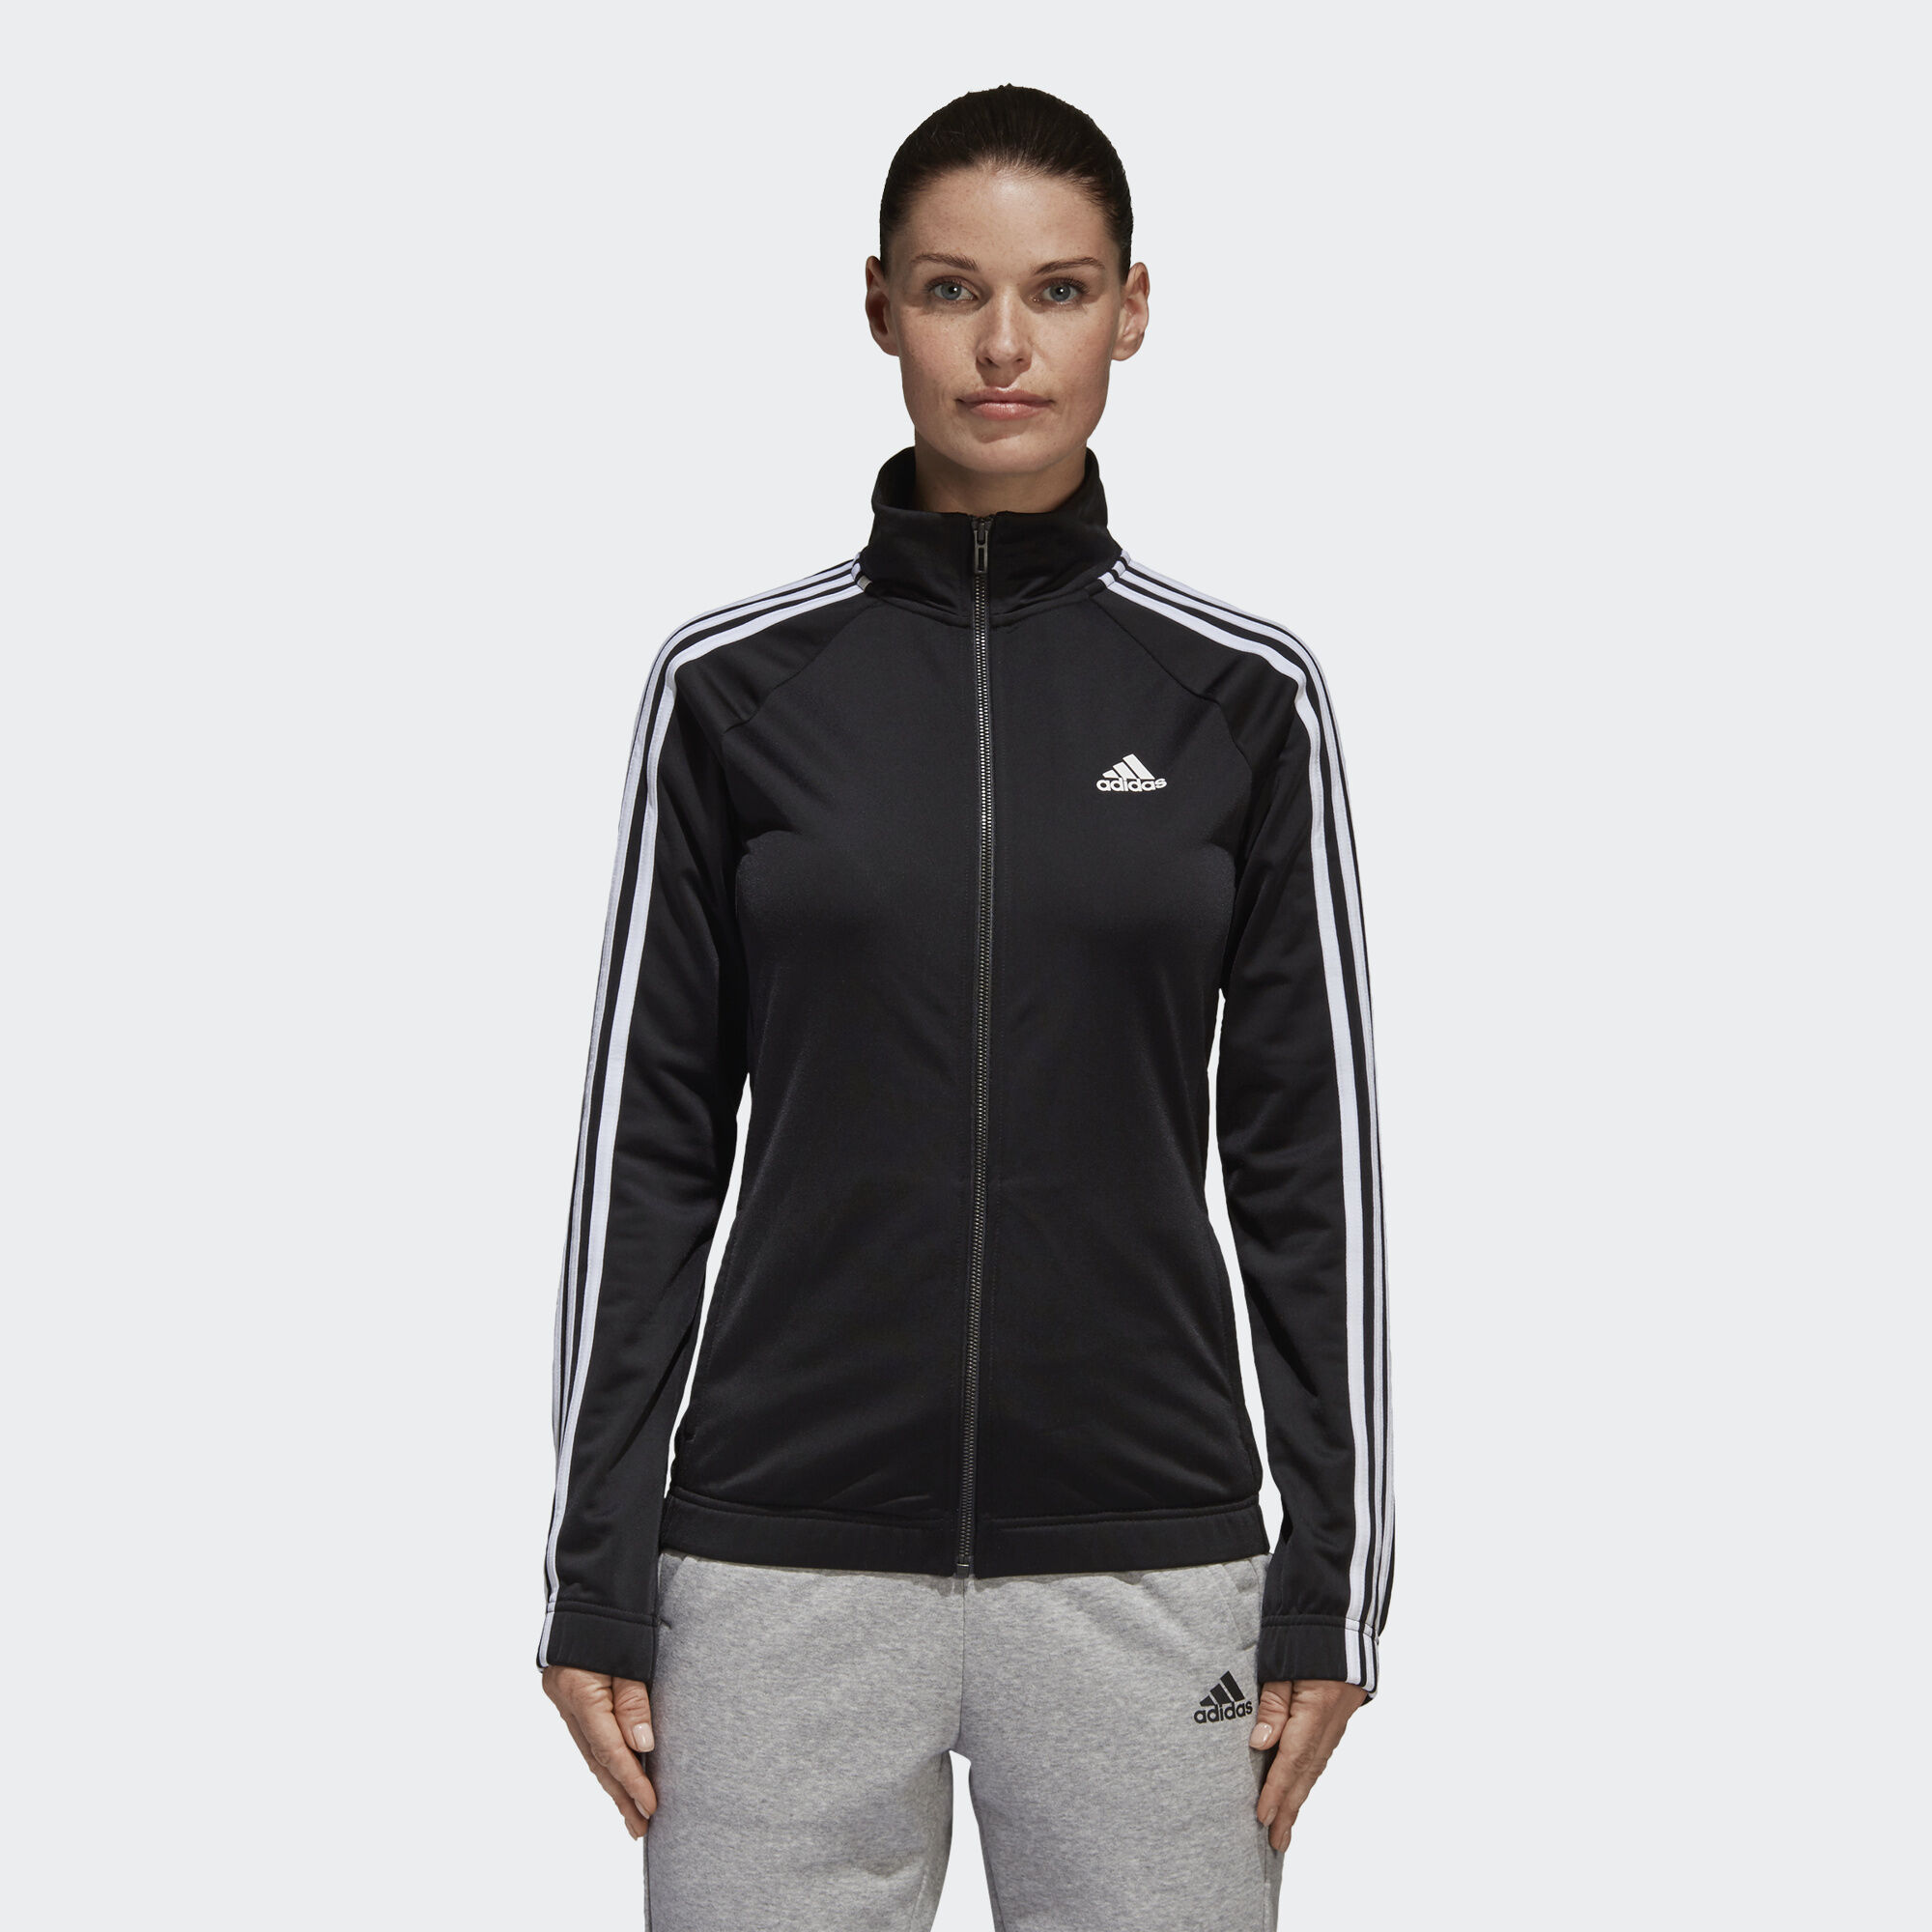 Adidas Winter Coat Womens - Tradingbasis